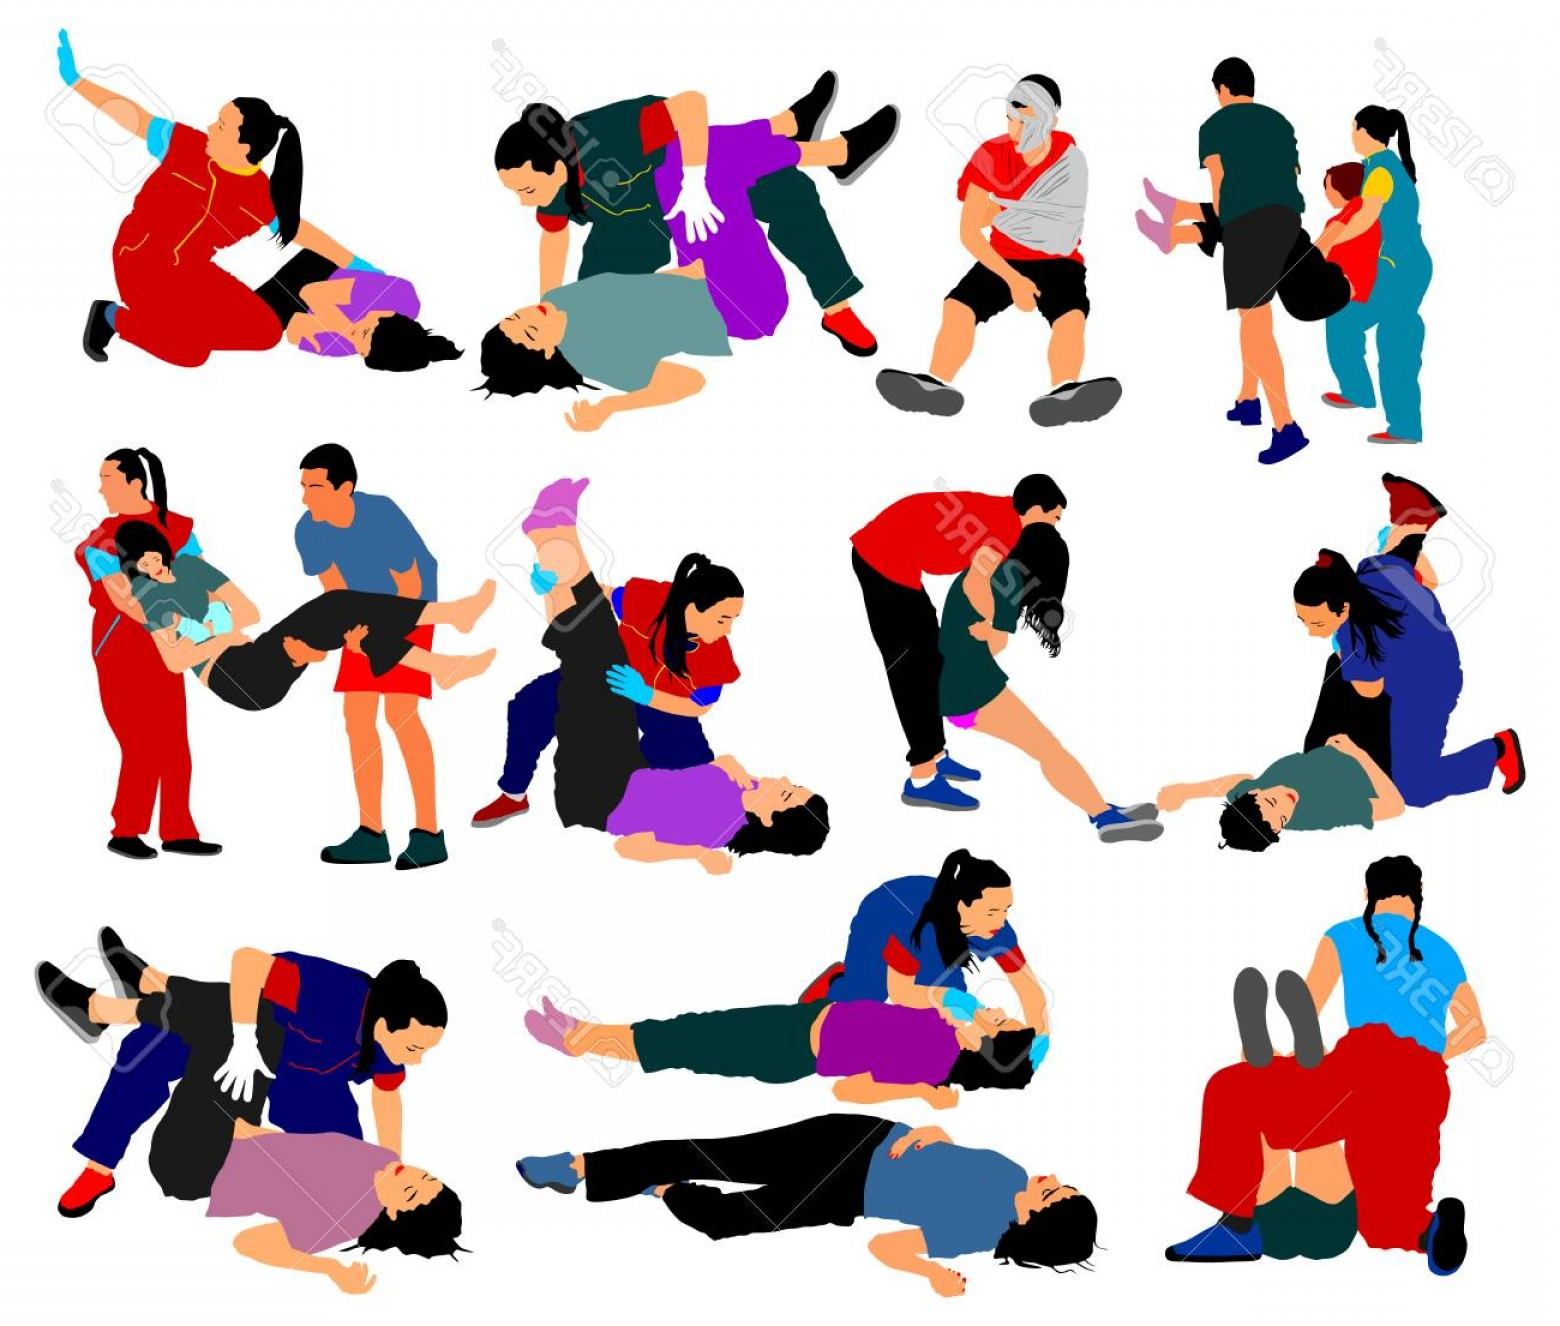 Earthquake Rescue Vector: Photostock Vector Drowning Situation First Aid Vector Illustration Big Group Patients Help Drunk Person Overdose After